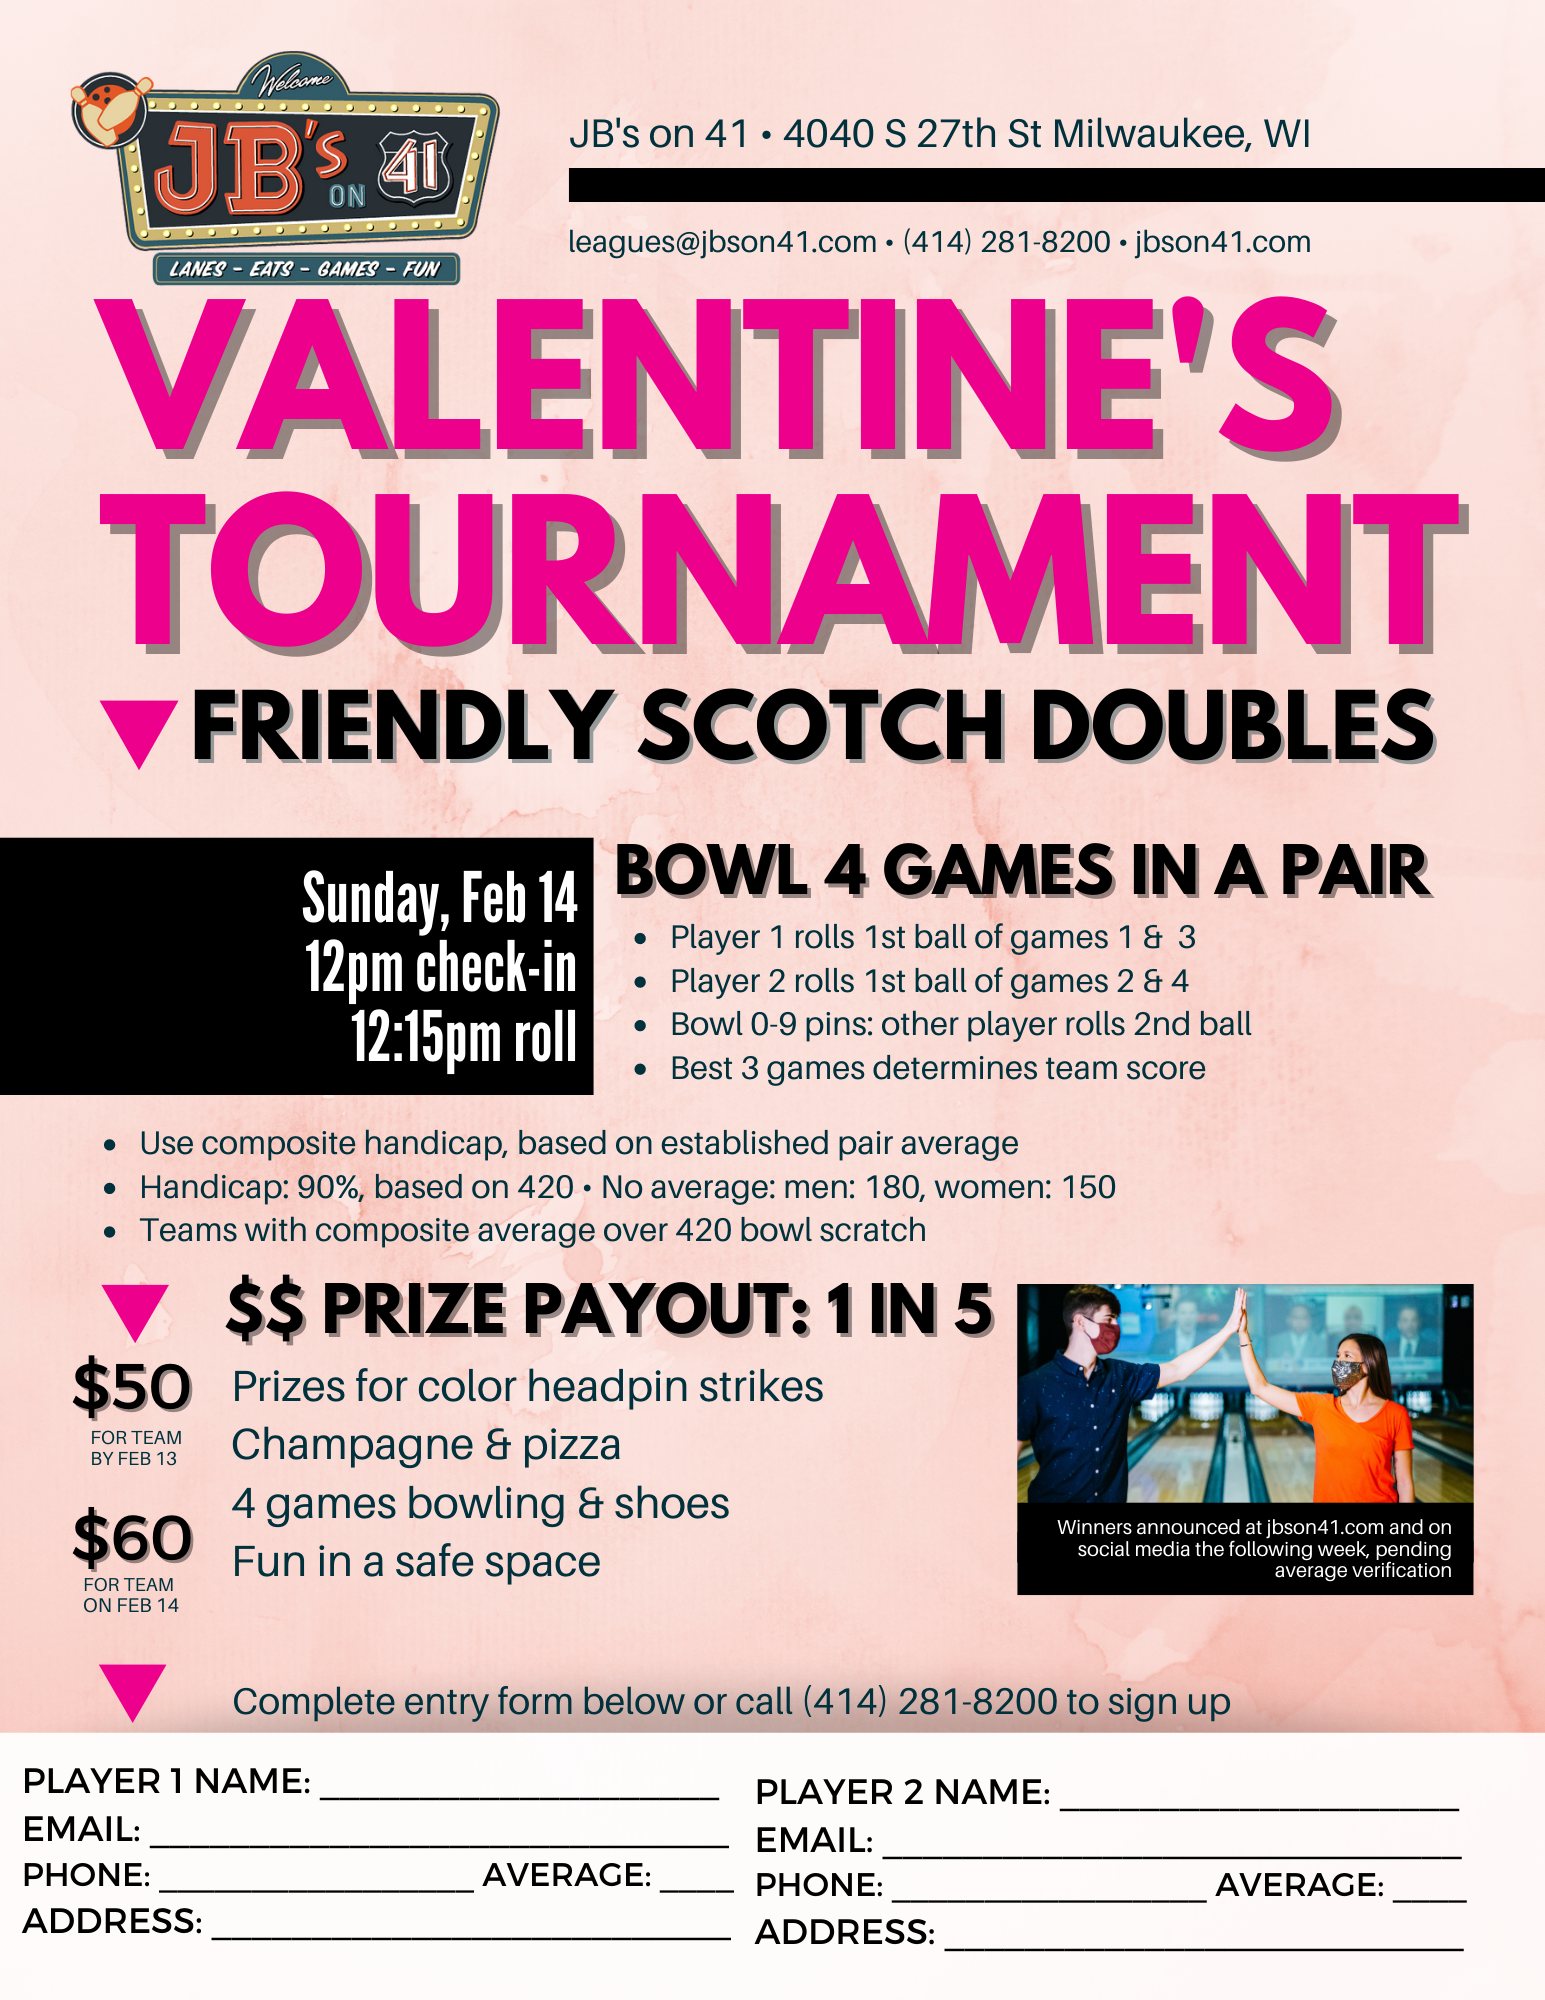 valentine's day bowling tournament | fun couples ideas for holidays | bowling tournaments | valentine's day 2021 | JB's on 41